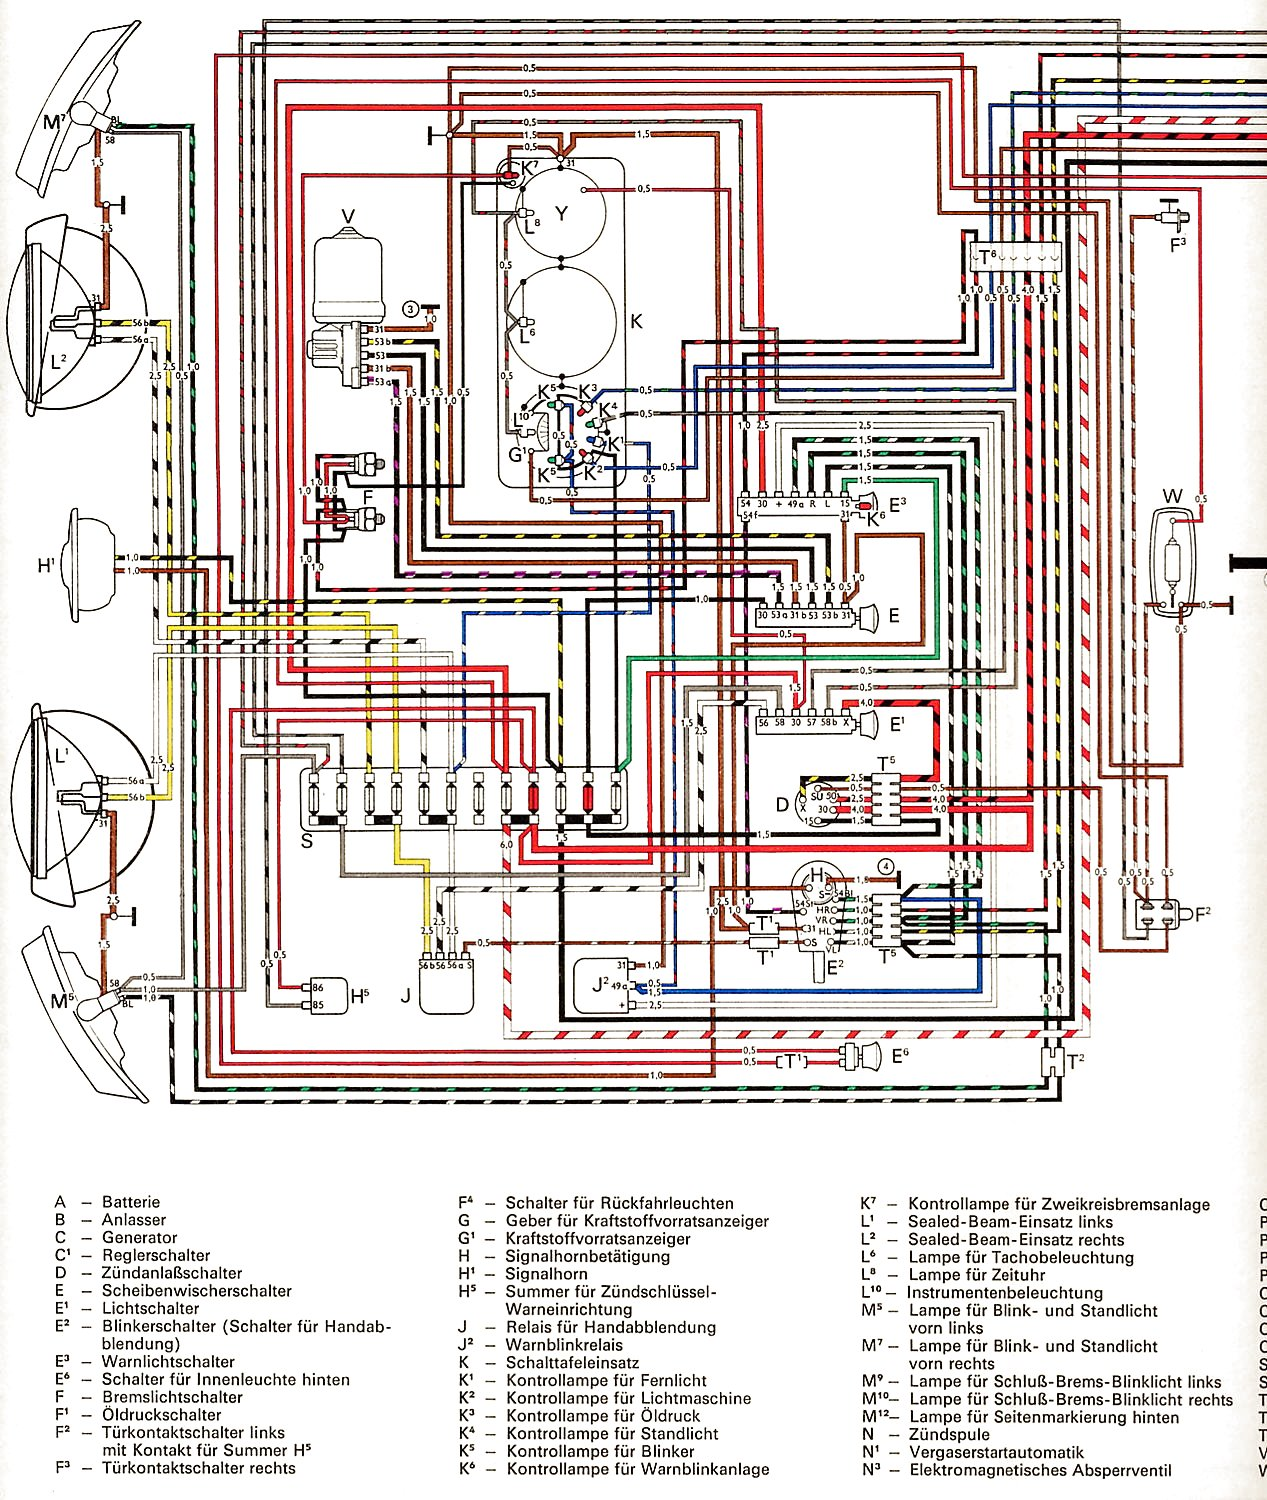 2000 vw beetle wiring diagram 2000 vw beetle stereo wiring diagram VW Bug Diagrams vw bug wiring schematic